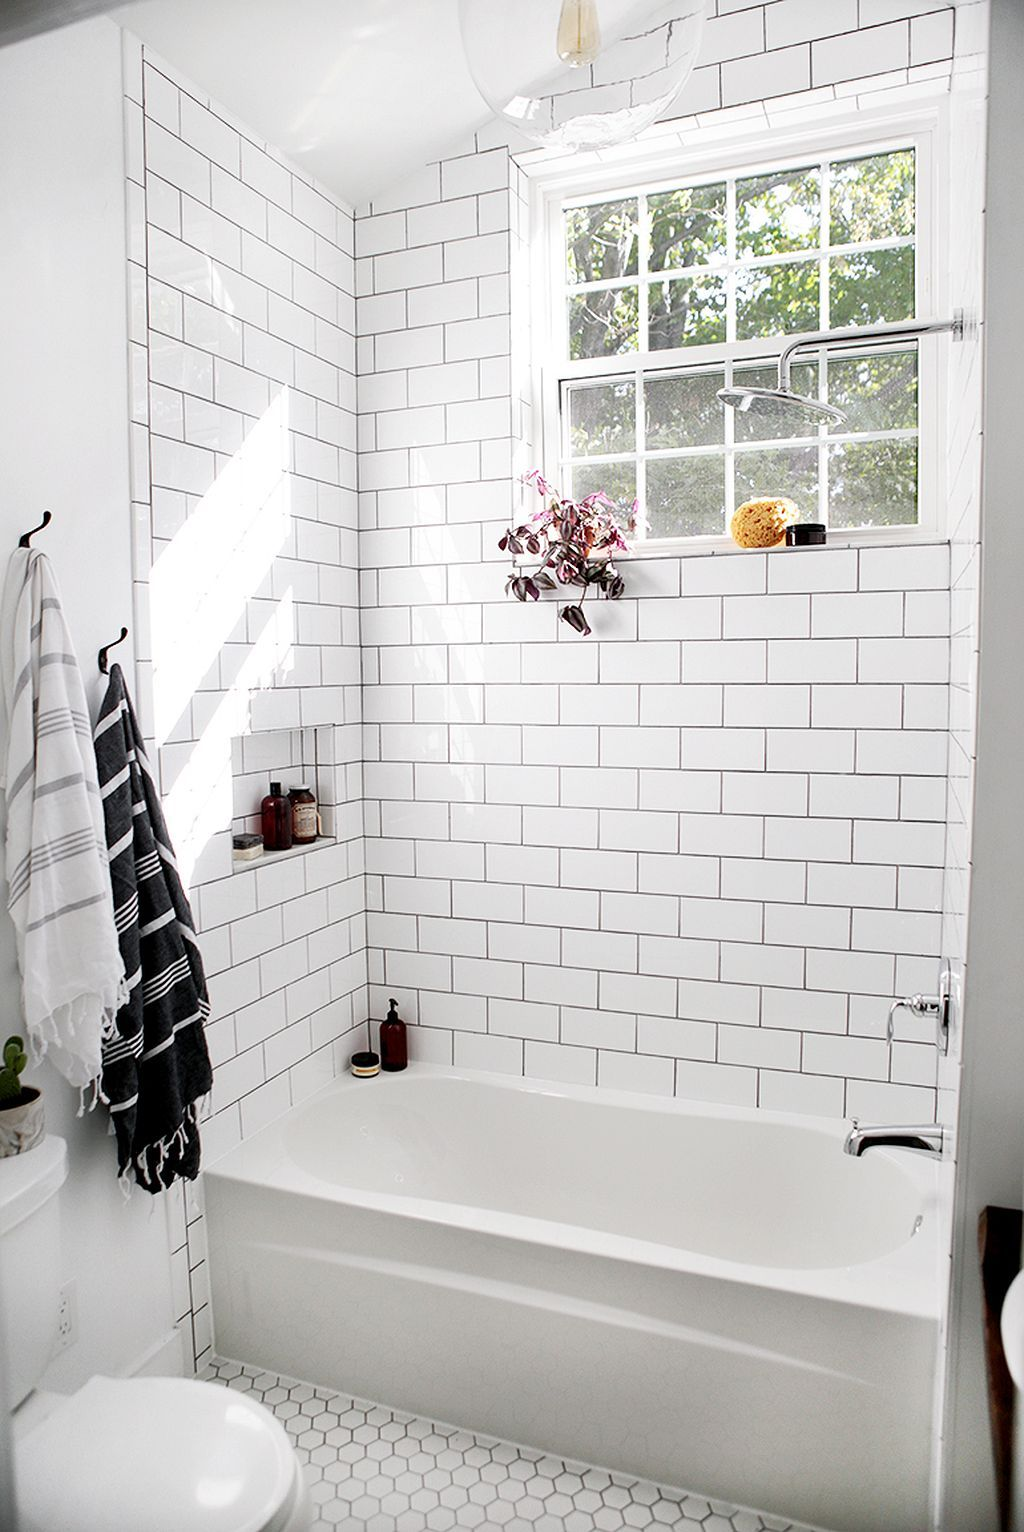 81 Turkish Towels Bathroom Variation You Might Want To Know | Towels ...